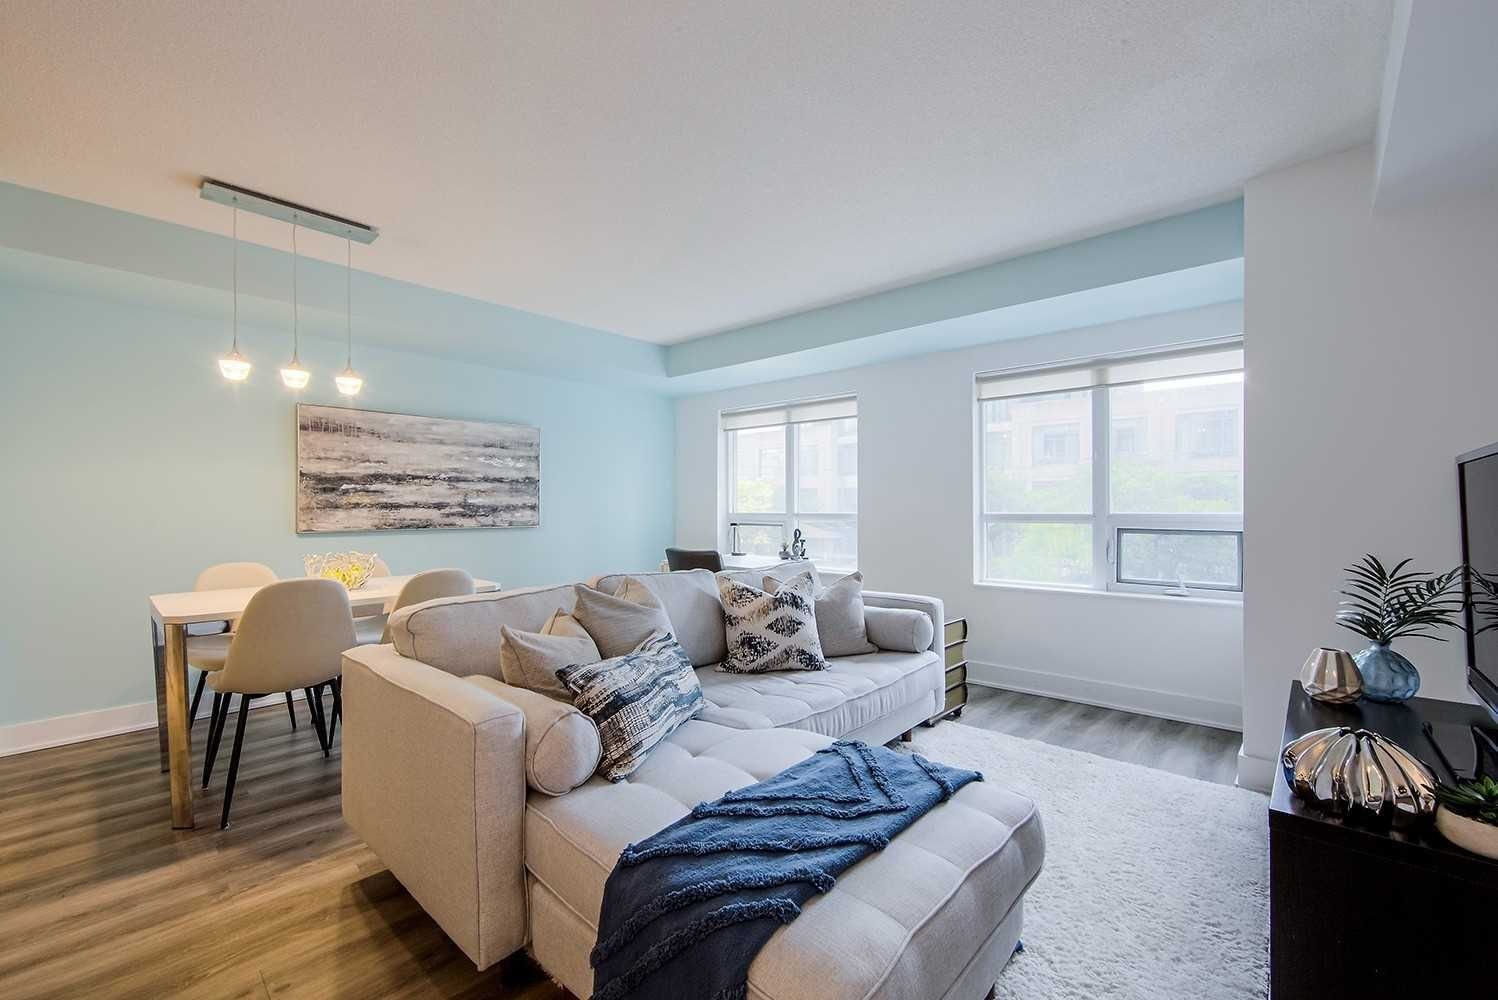 20 Blue Jays Way, unit 219 for sale in Toronto - image #2